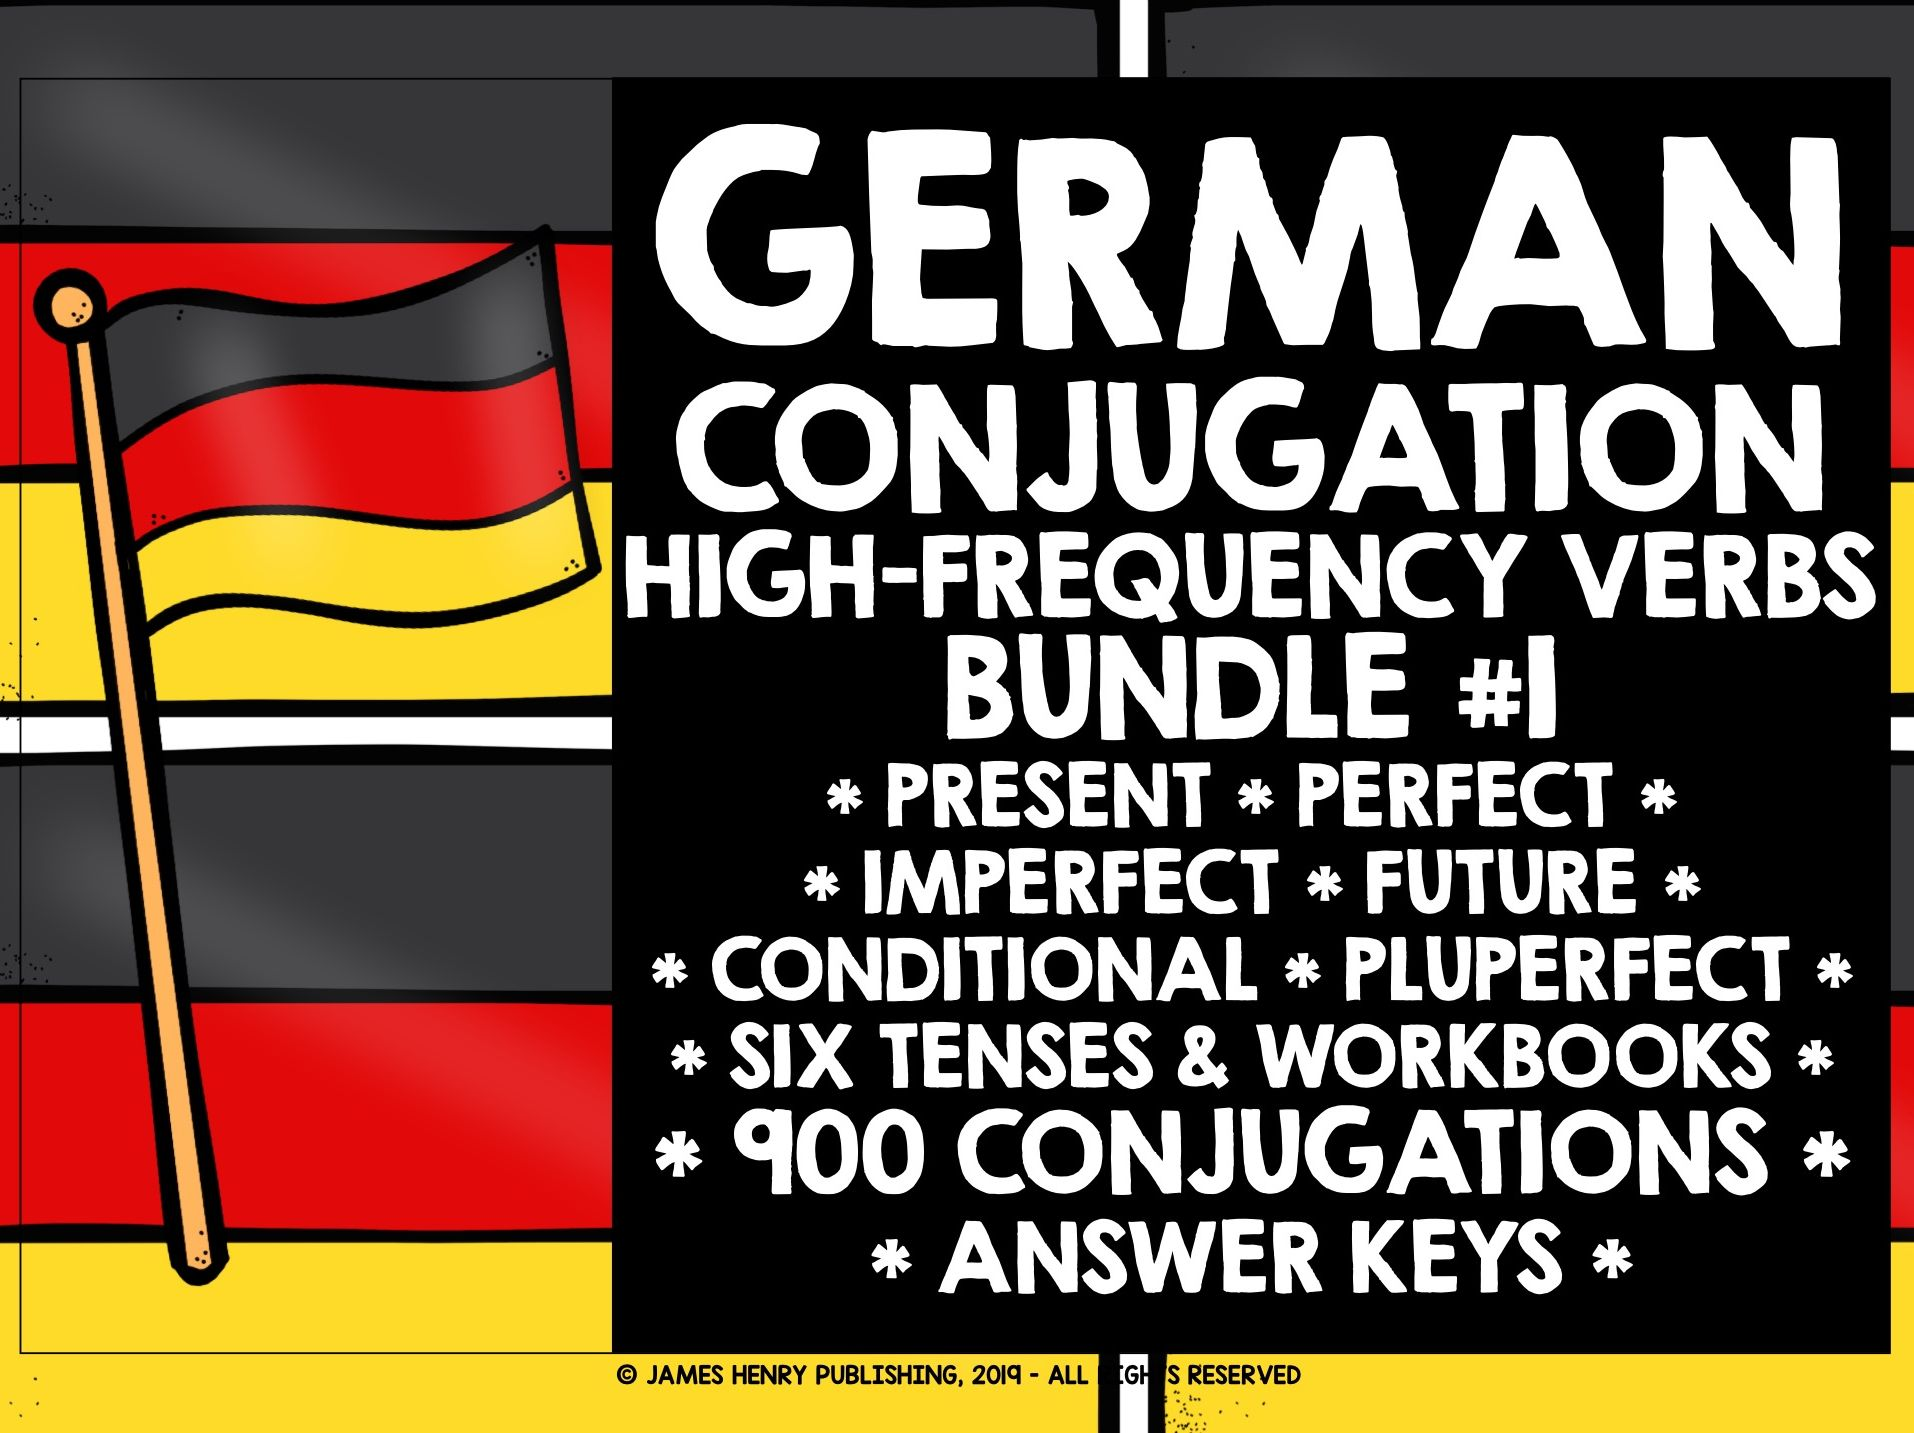 GERMAN HIGH-FREQUENCY VERBS CONJUGATION BUNDLE 1